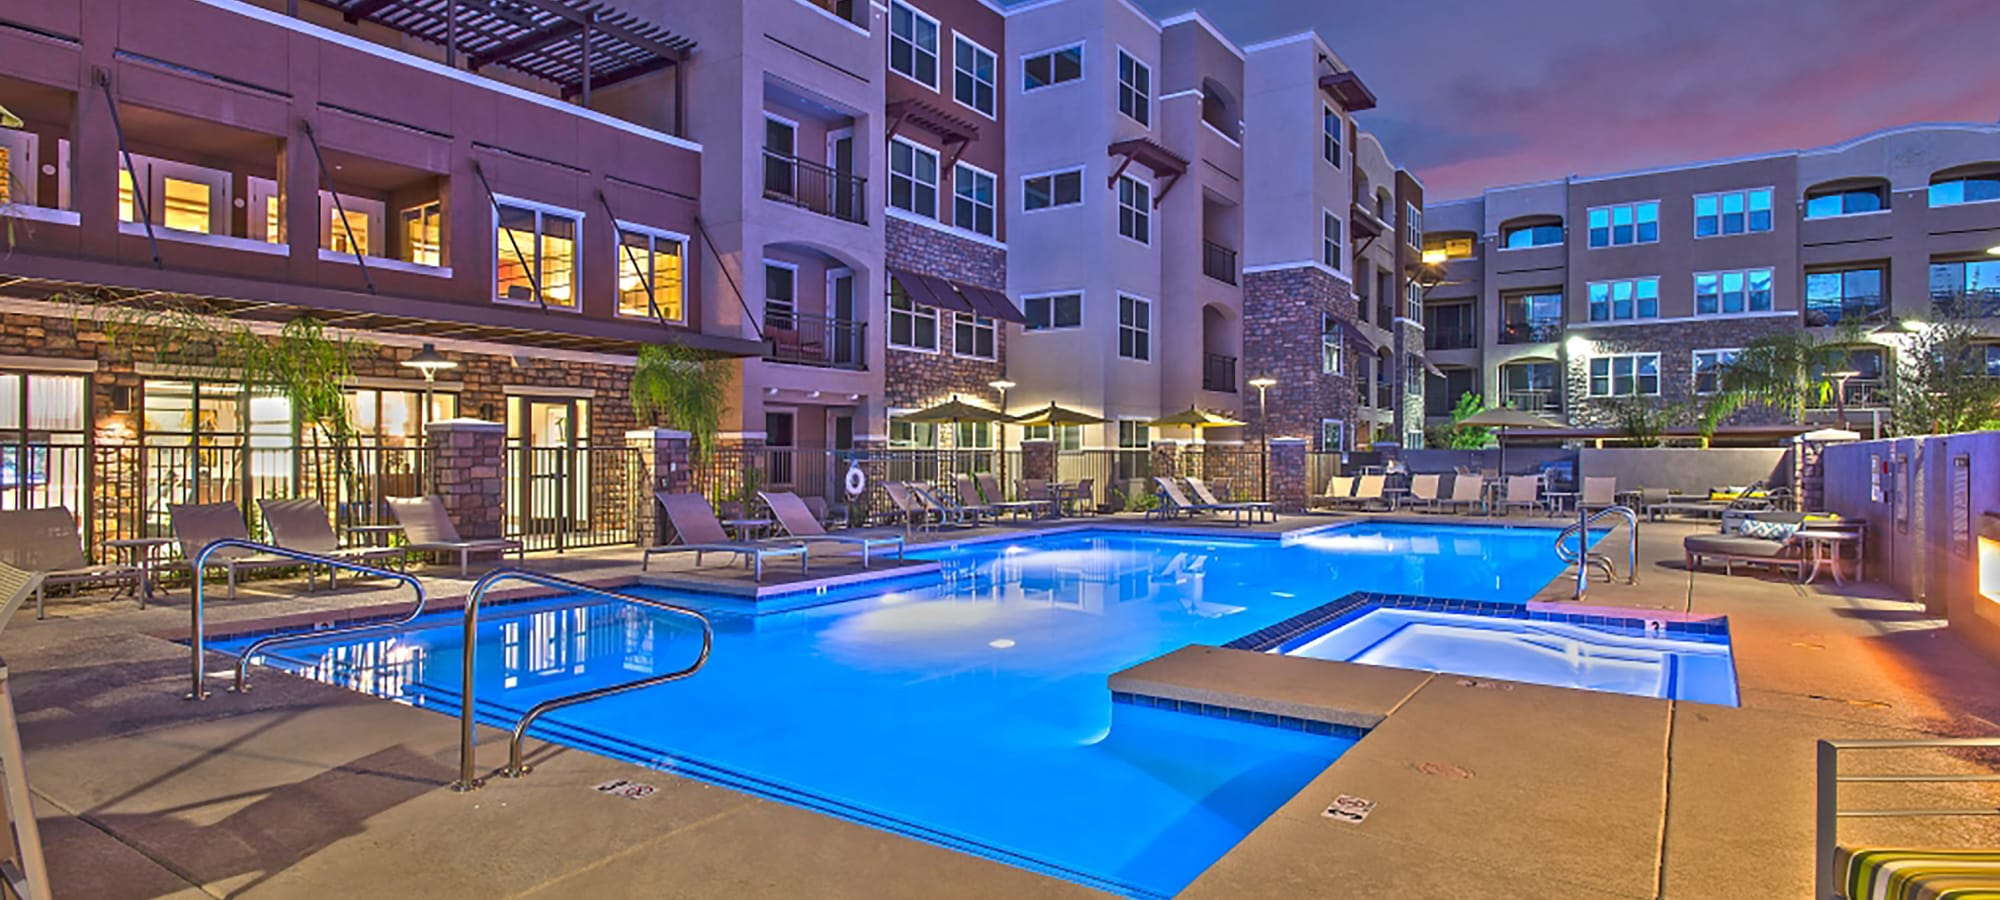 Apartments at Luxe Scottsdale Apartments in Scottsdale, Arizona